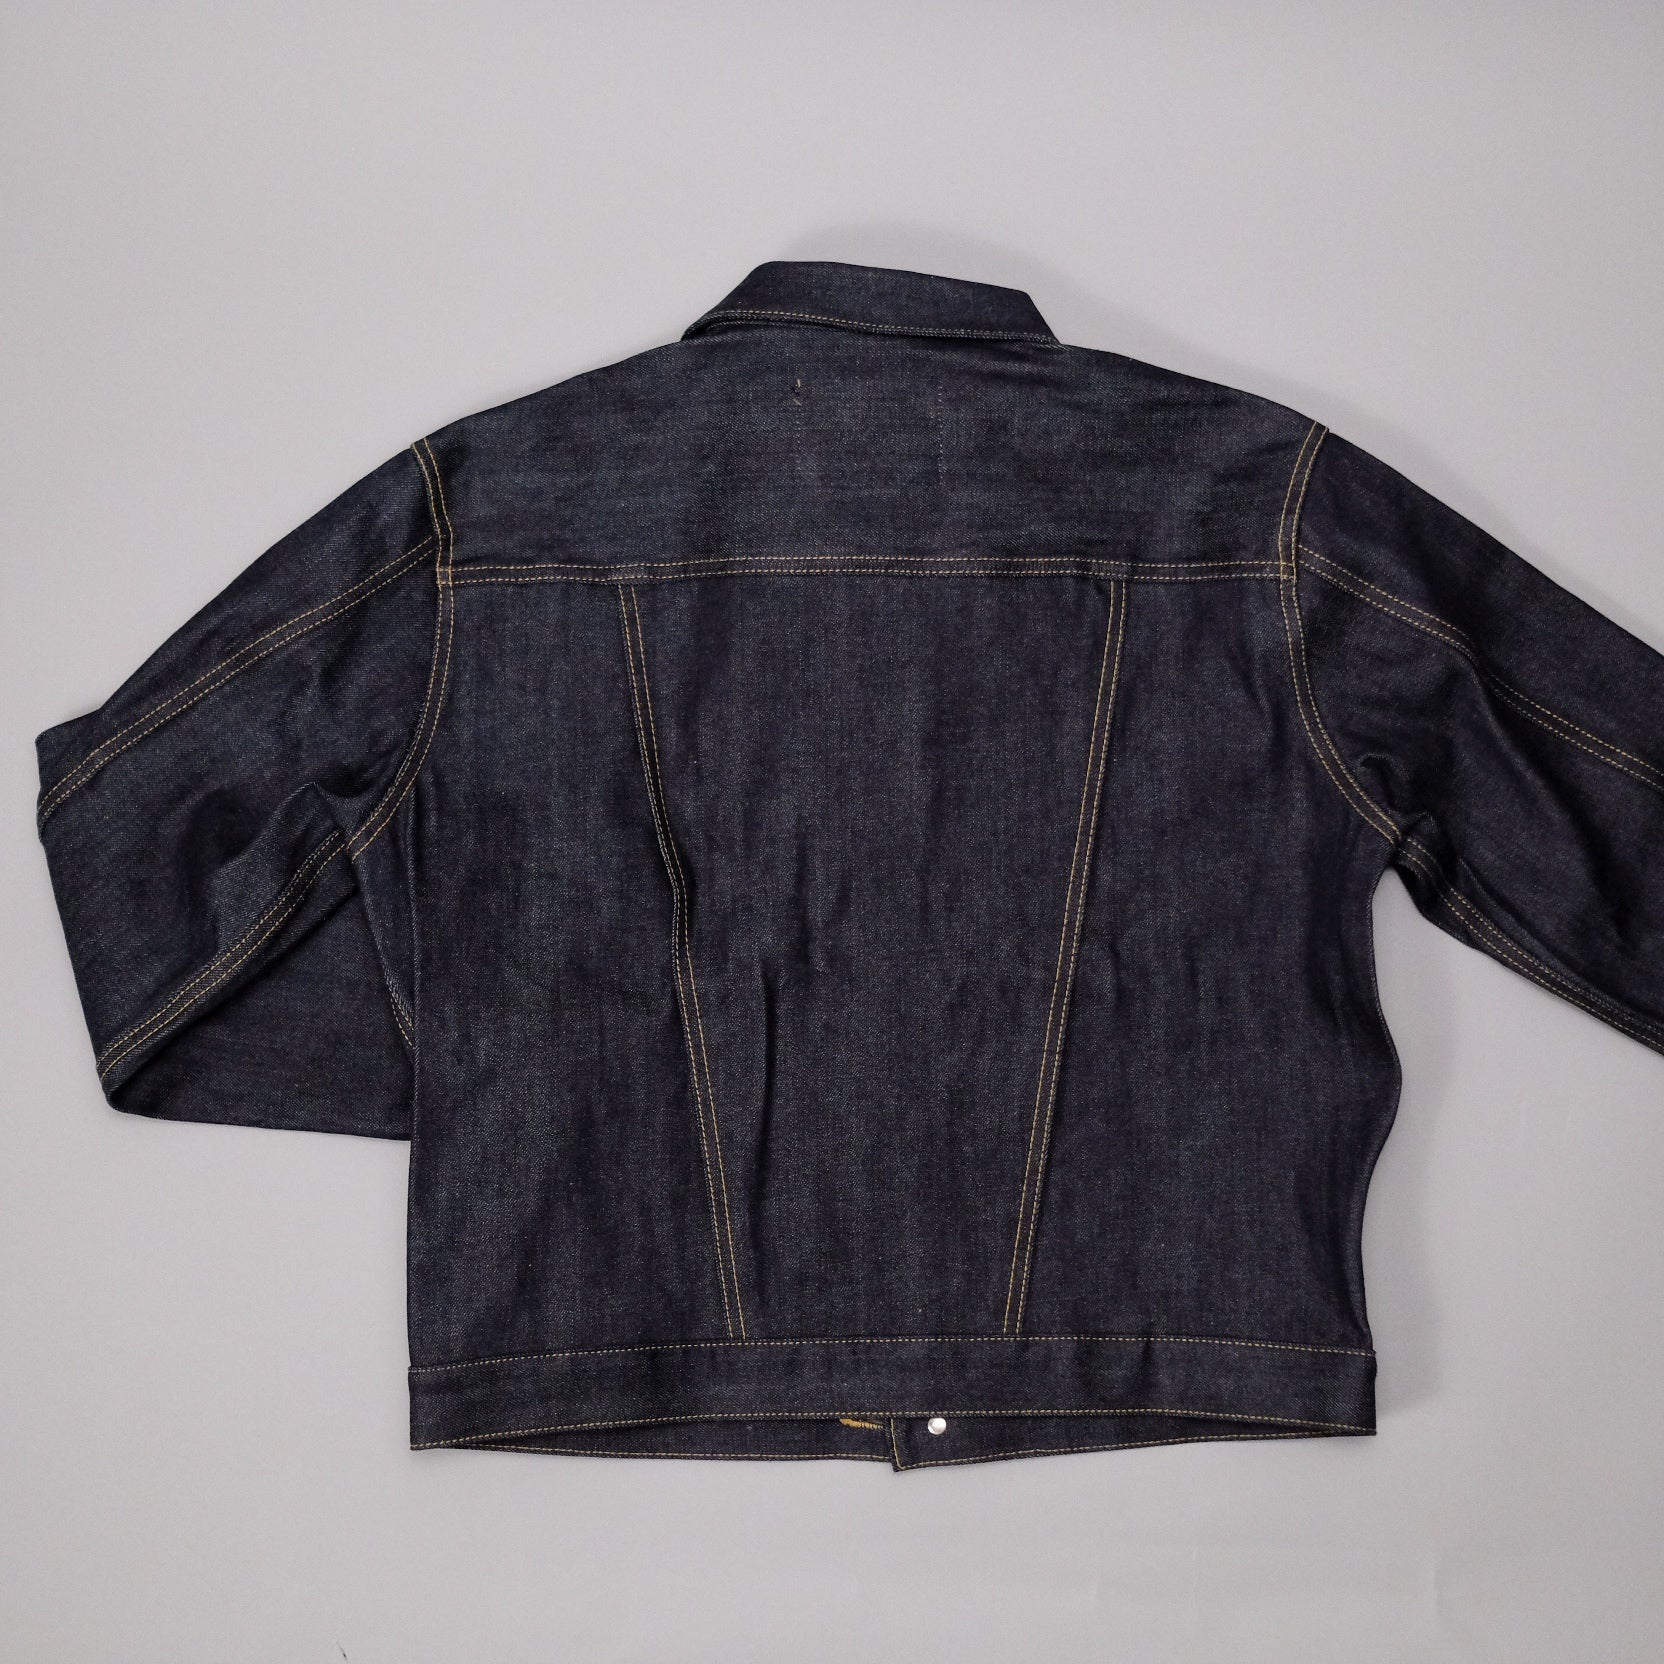 Groovin High Vintage Style Denim Jacket